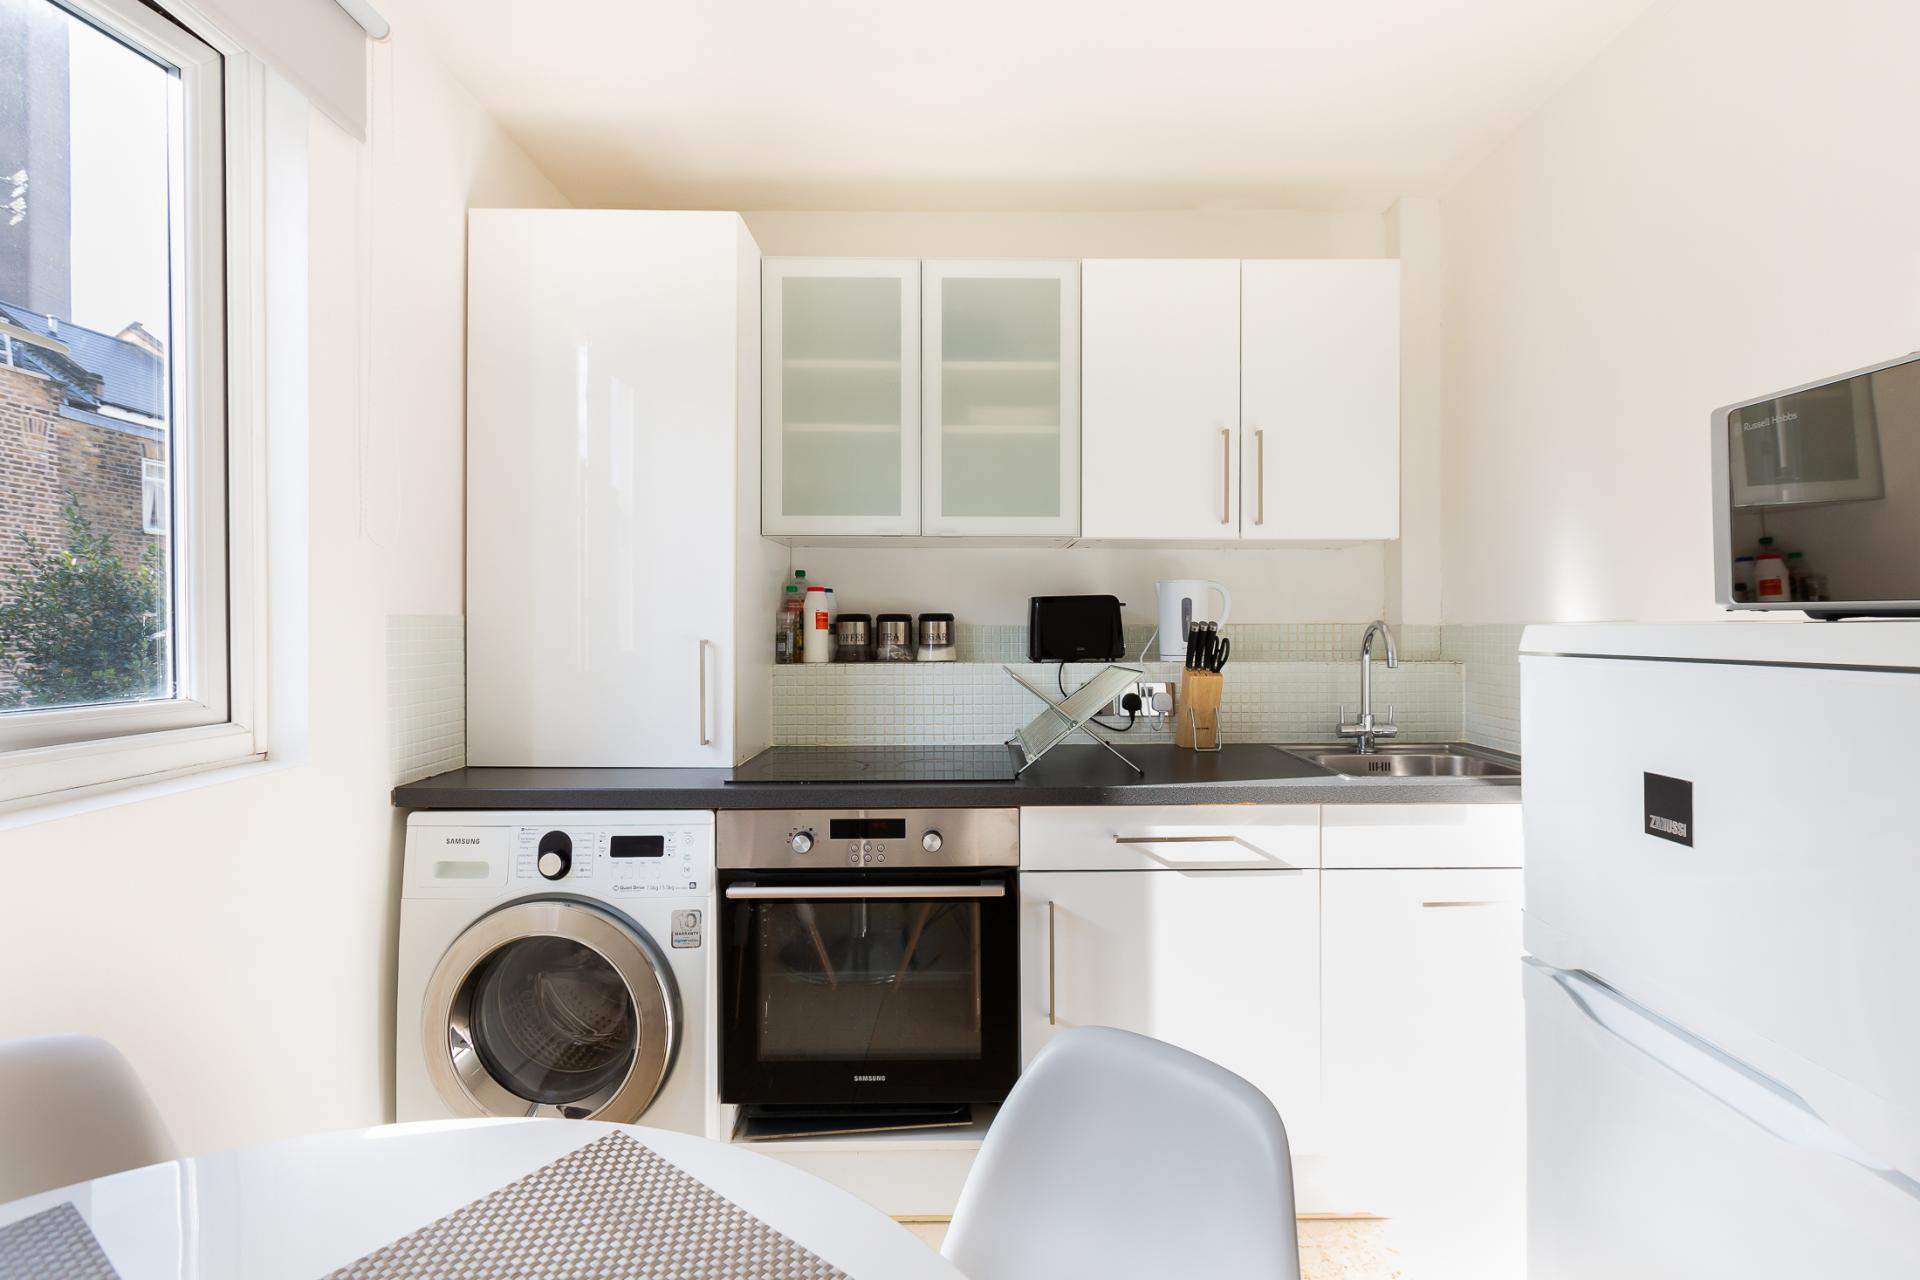 Kitchen at ZO Notting Hill Apartments, Maida Vale, London - Citybase Apartments